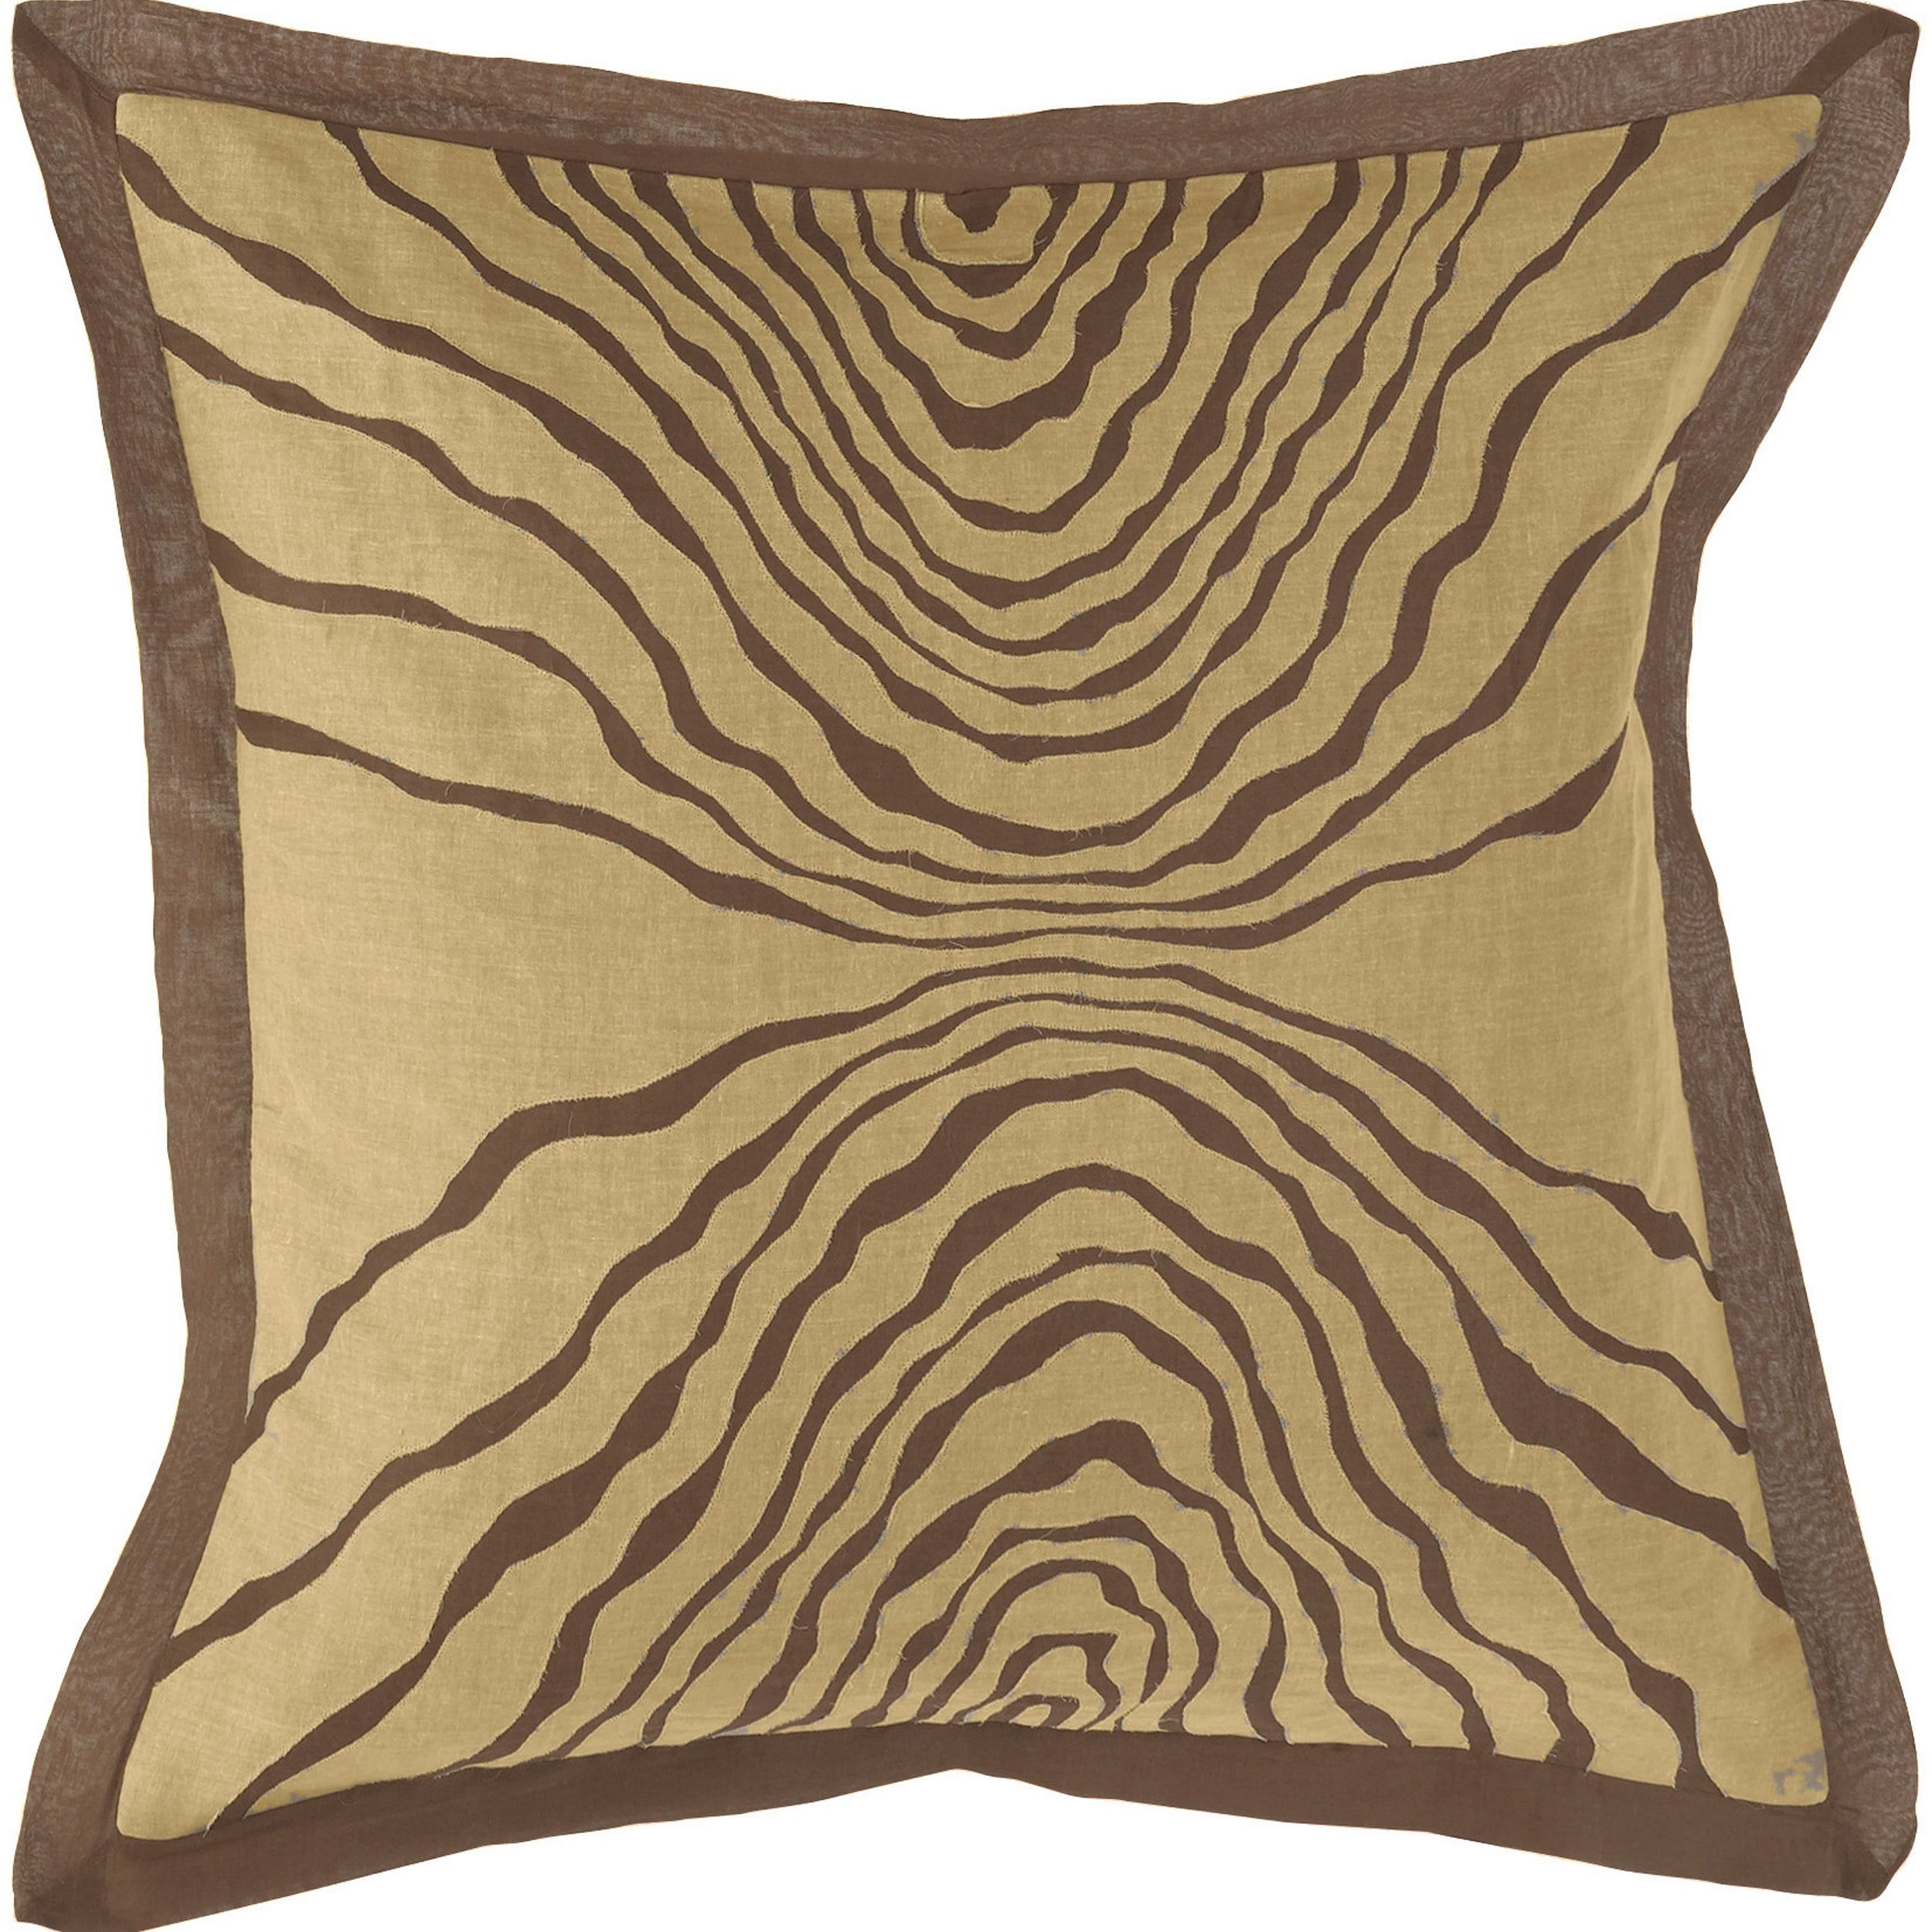 Decorative 18x18 Cartago Pillow